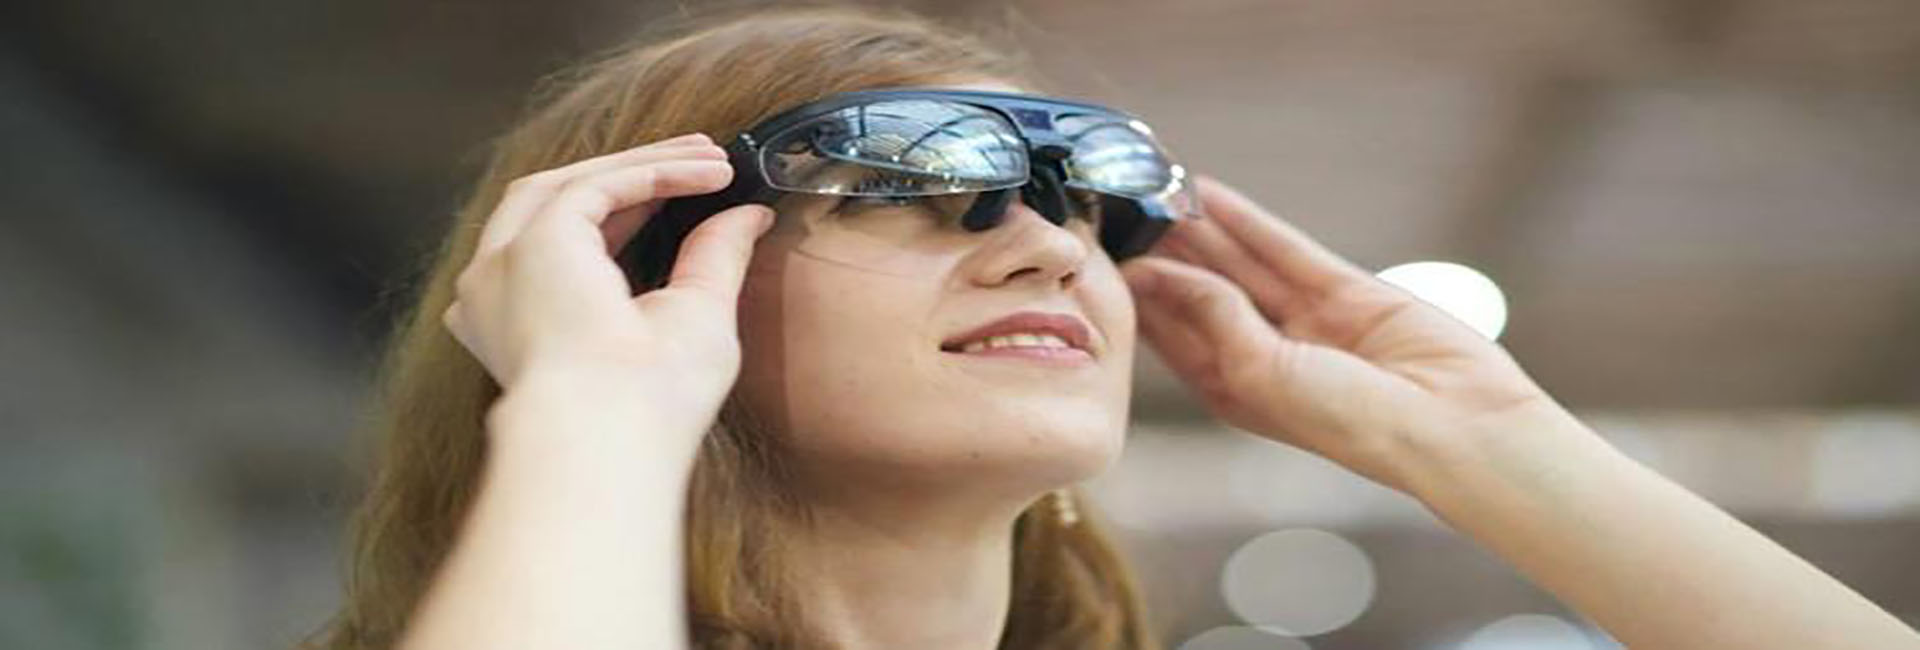 A worldview through smart glasses